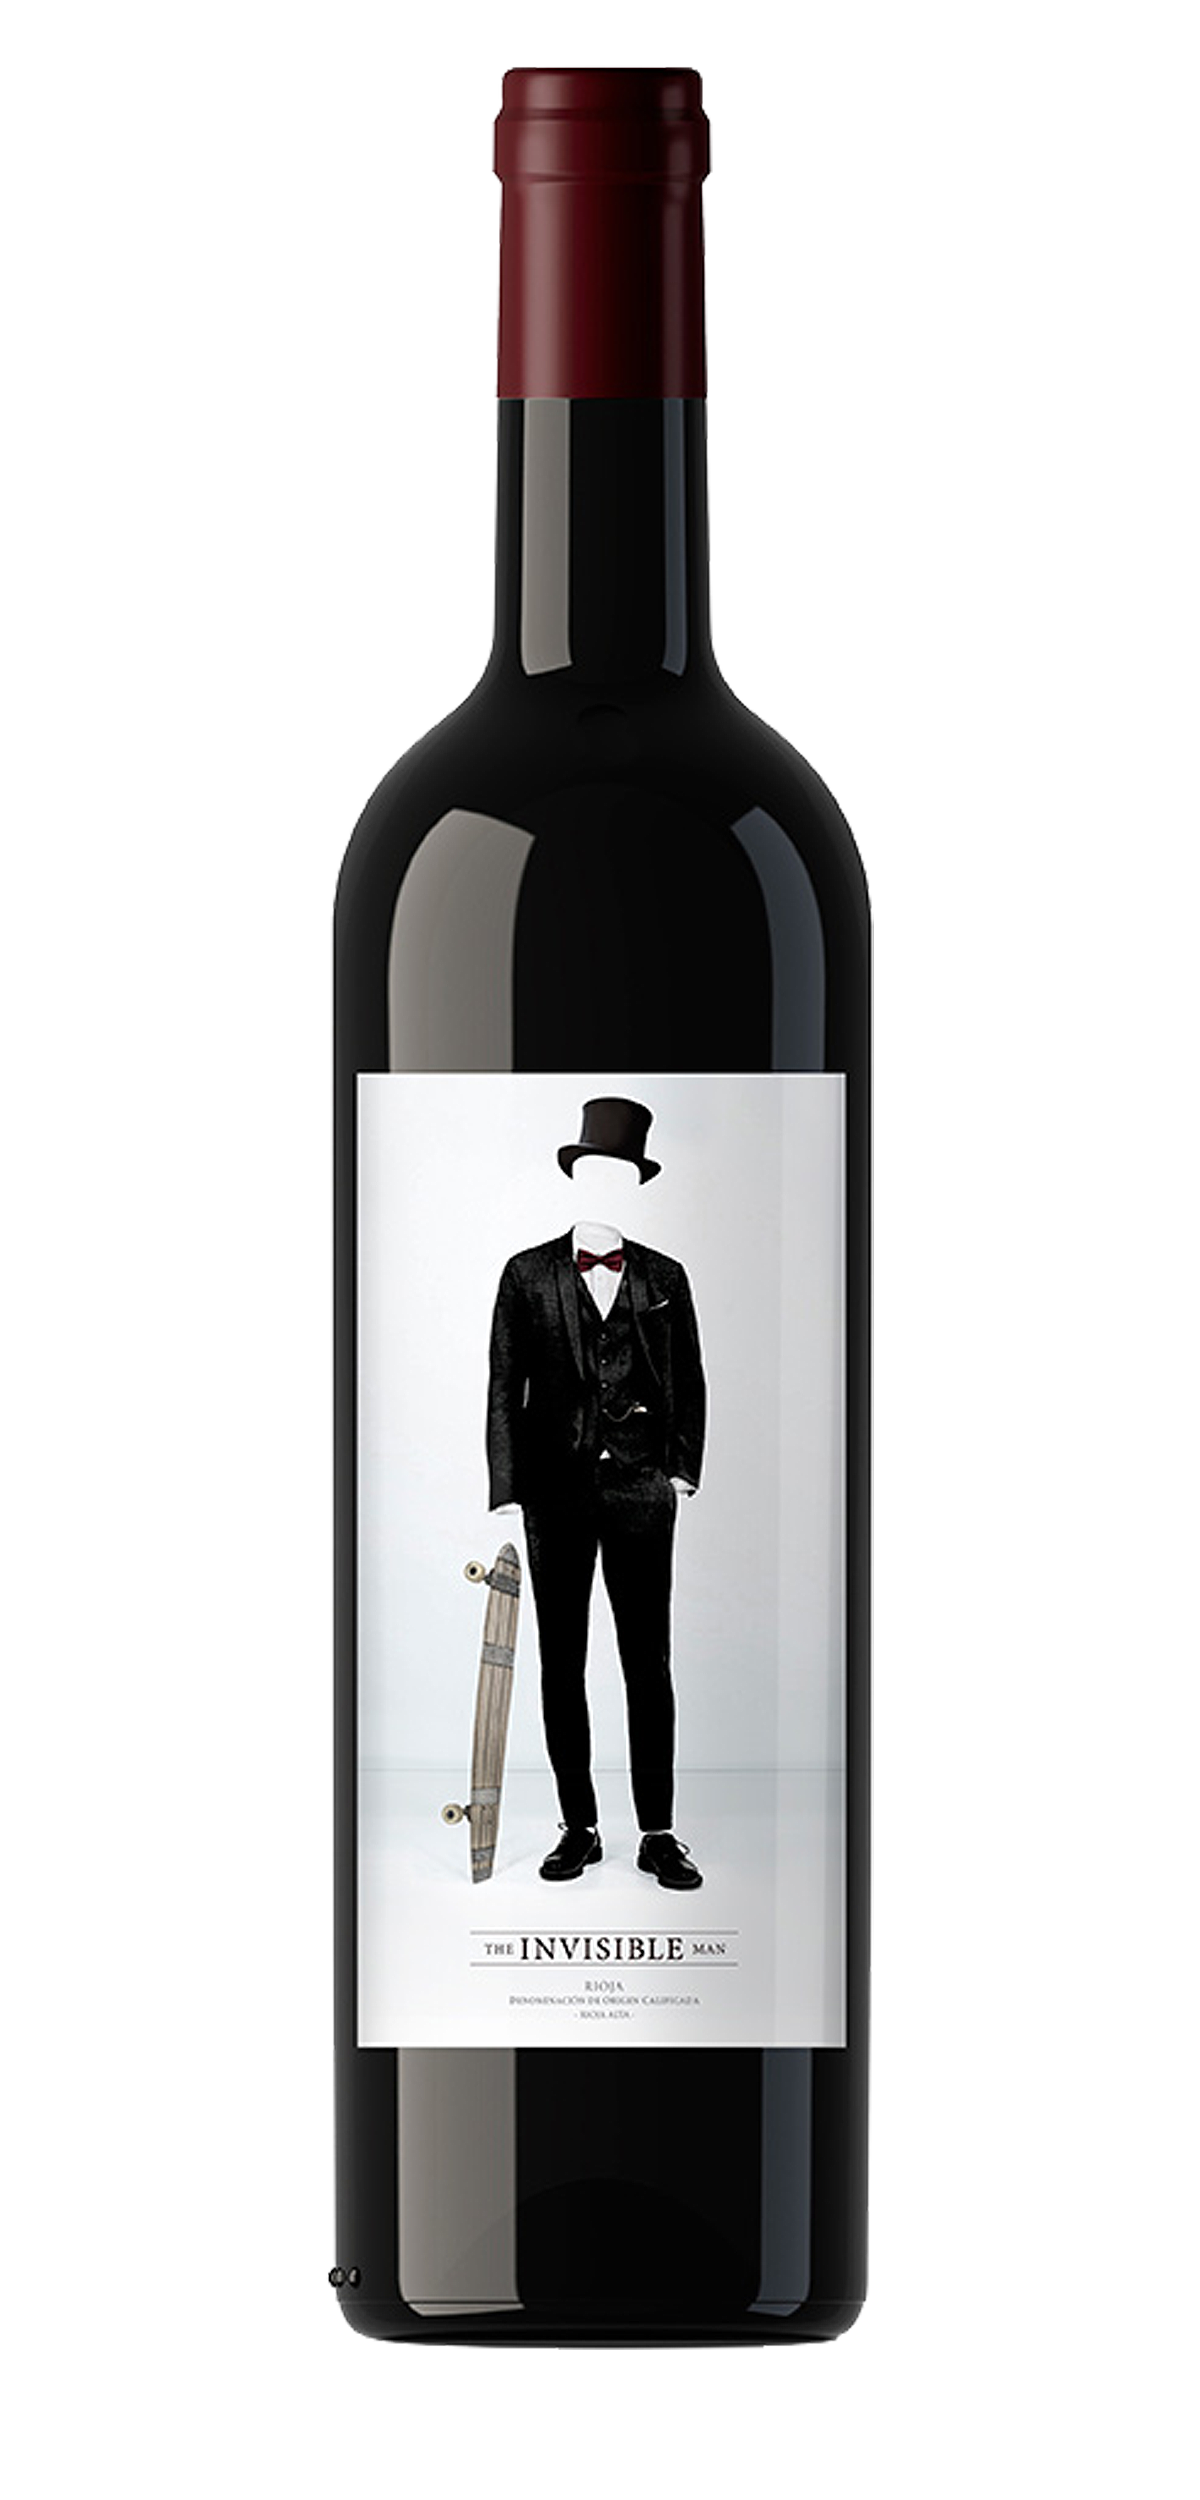 The Invisible Man wine bottle design